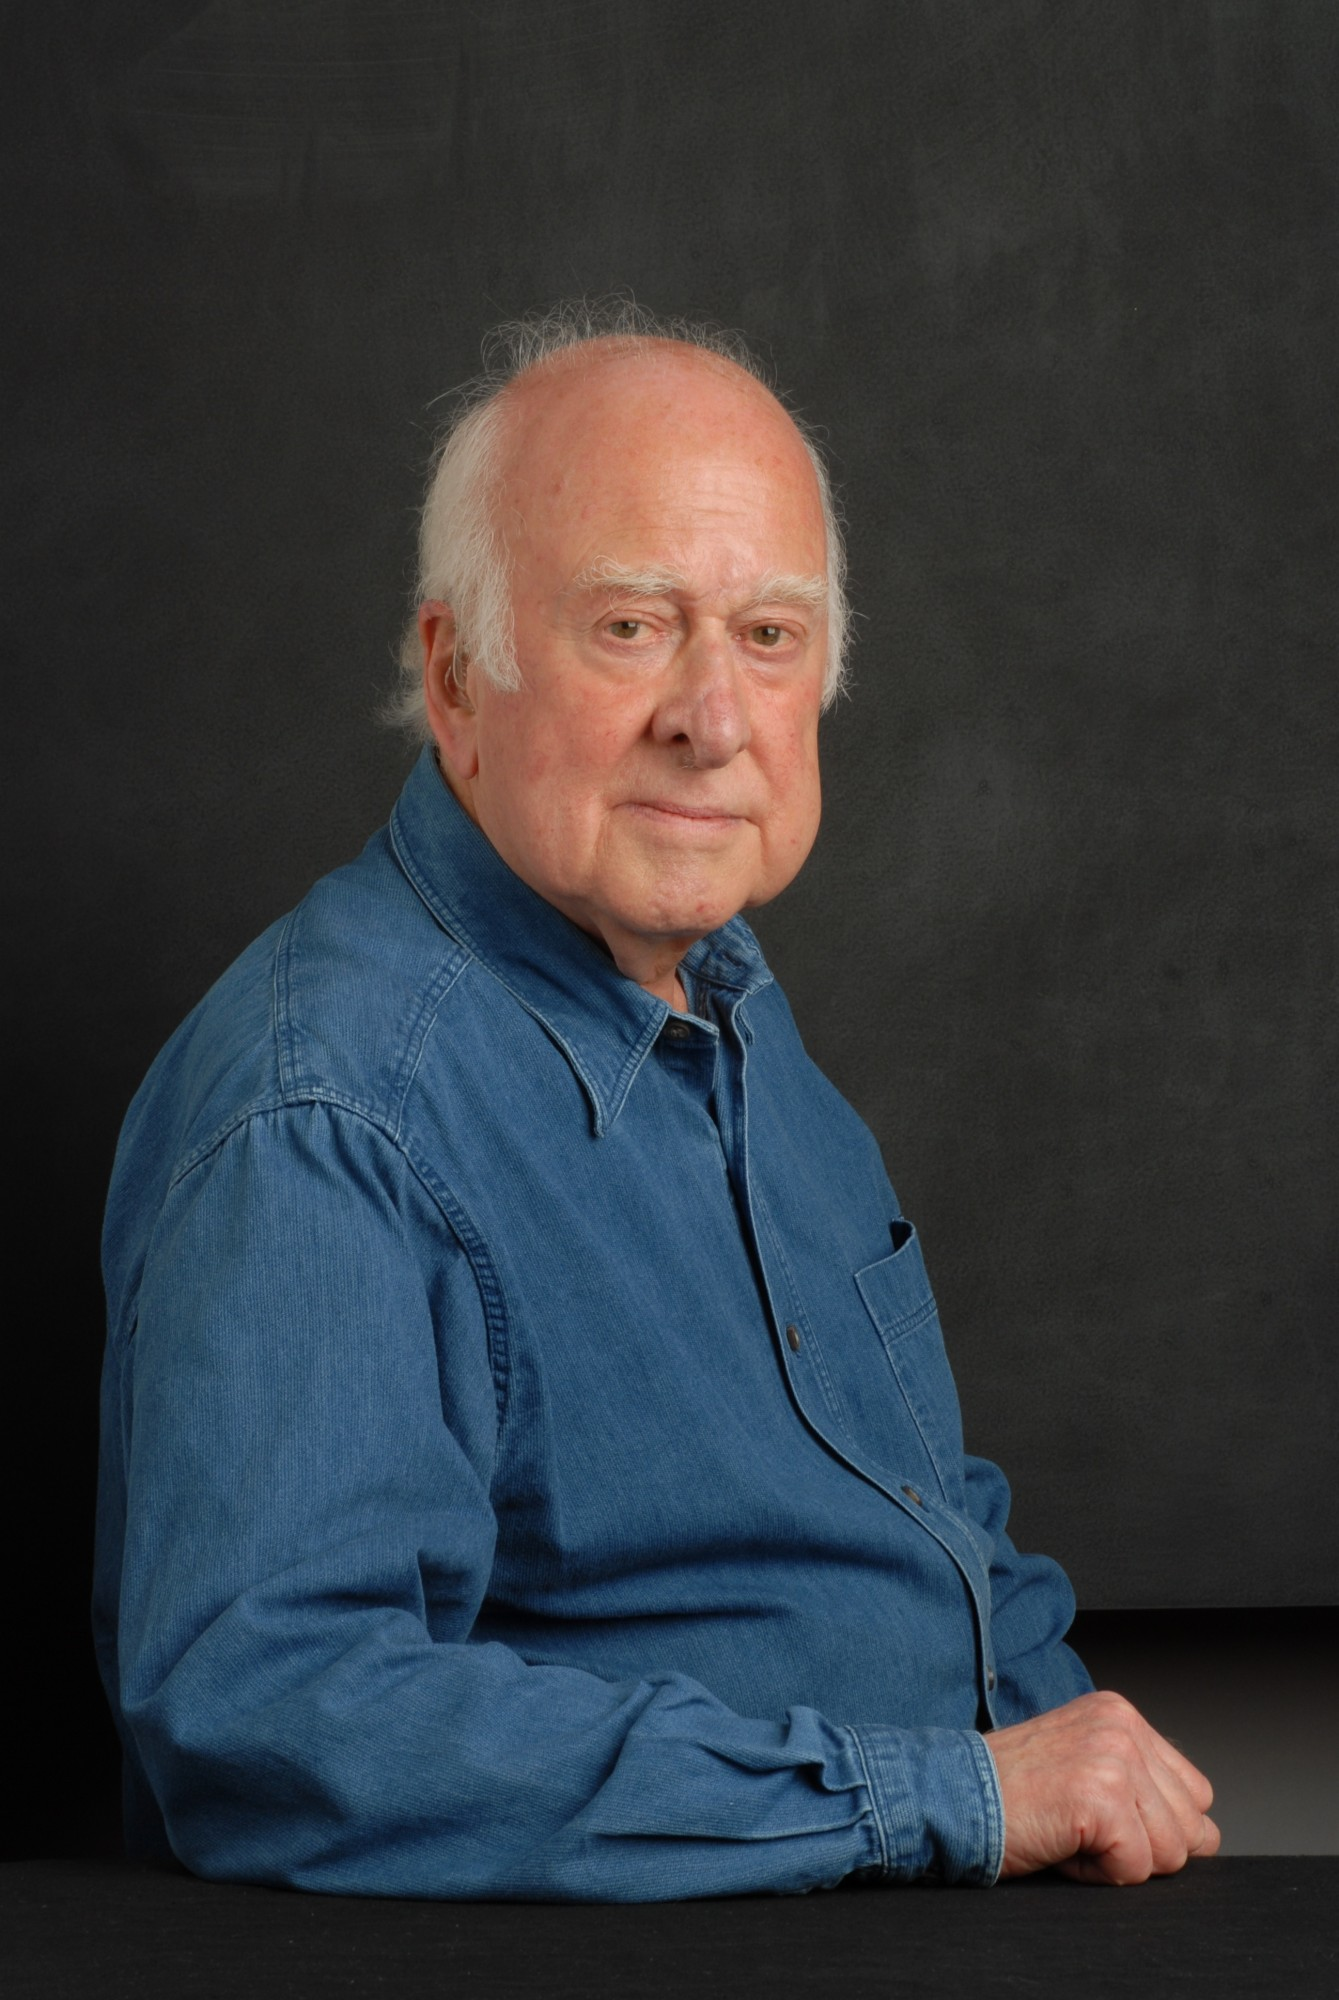 Photographic portrait of Peter Higgs taken by Peter Tuffy. 17 June 2009.